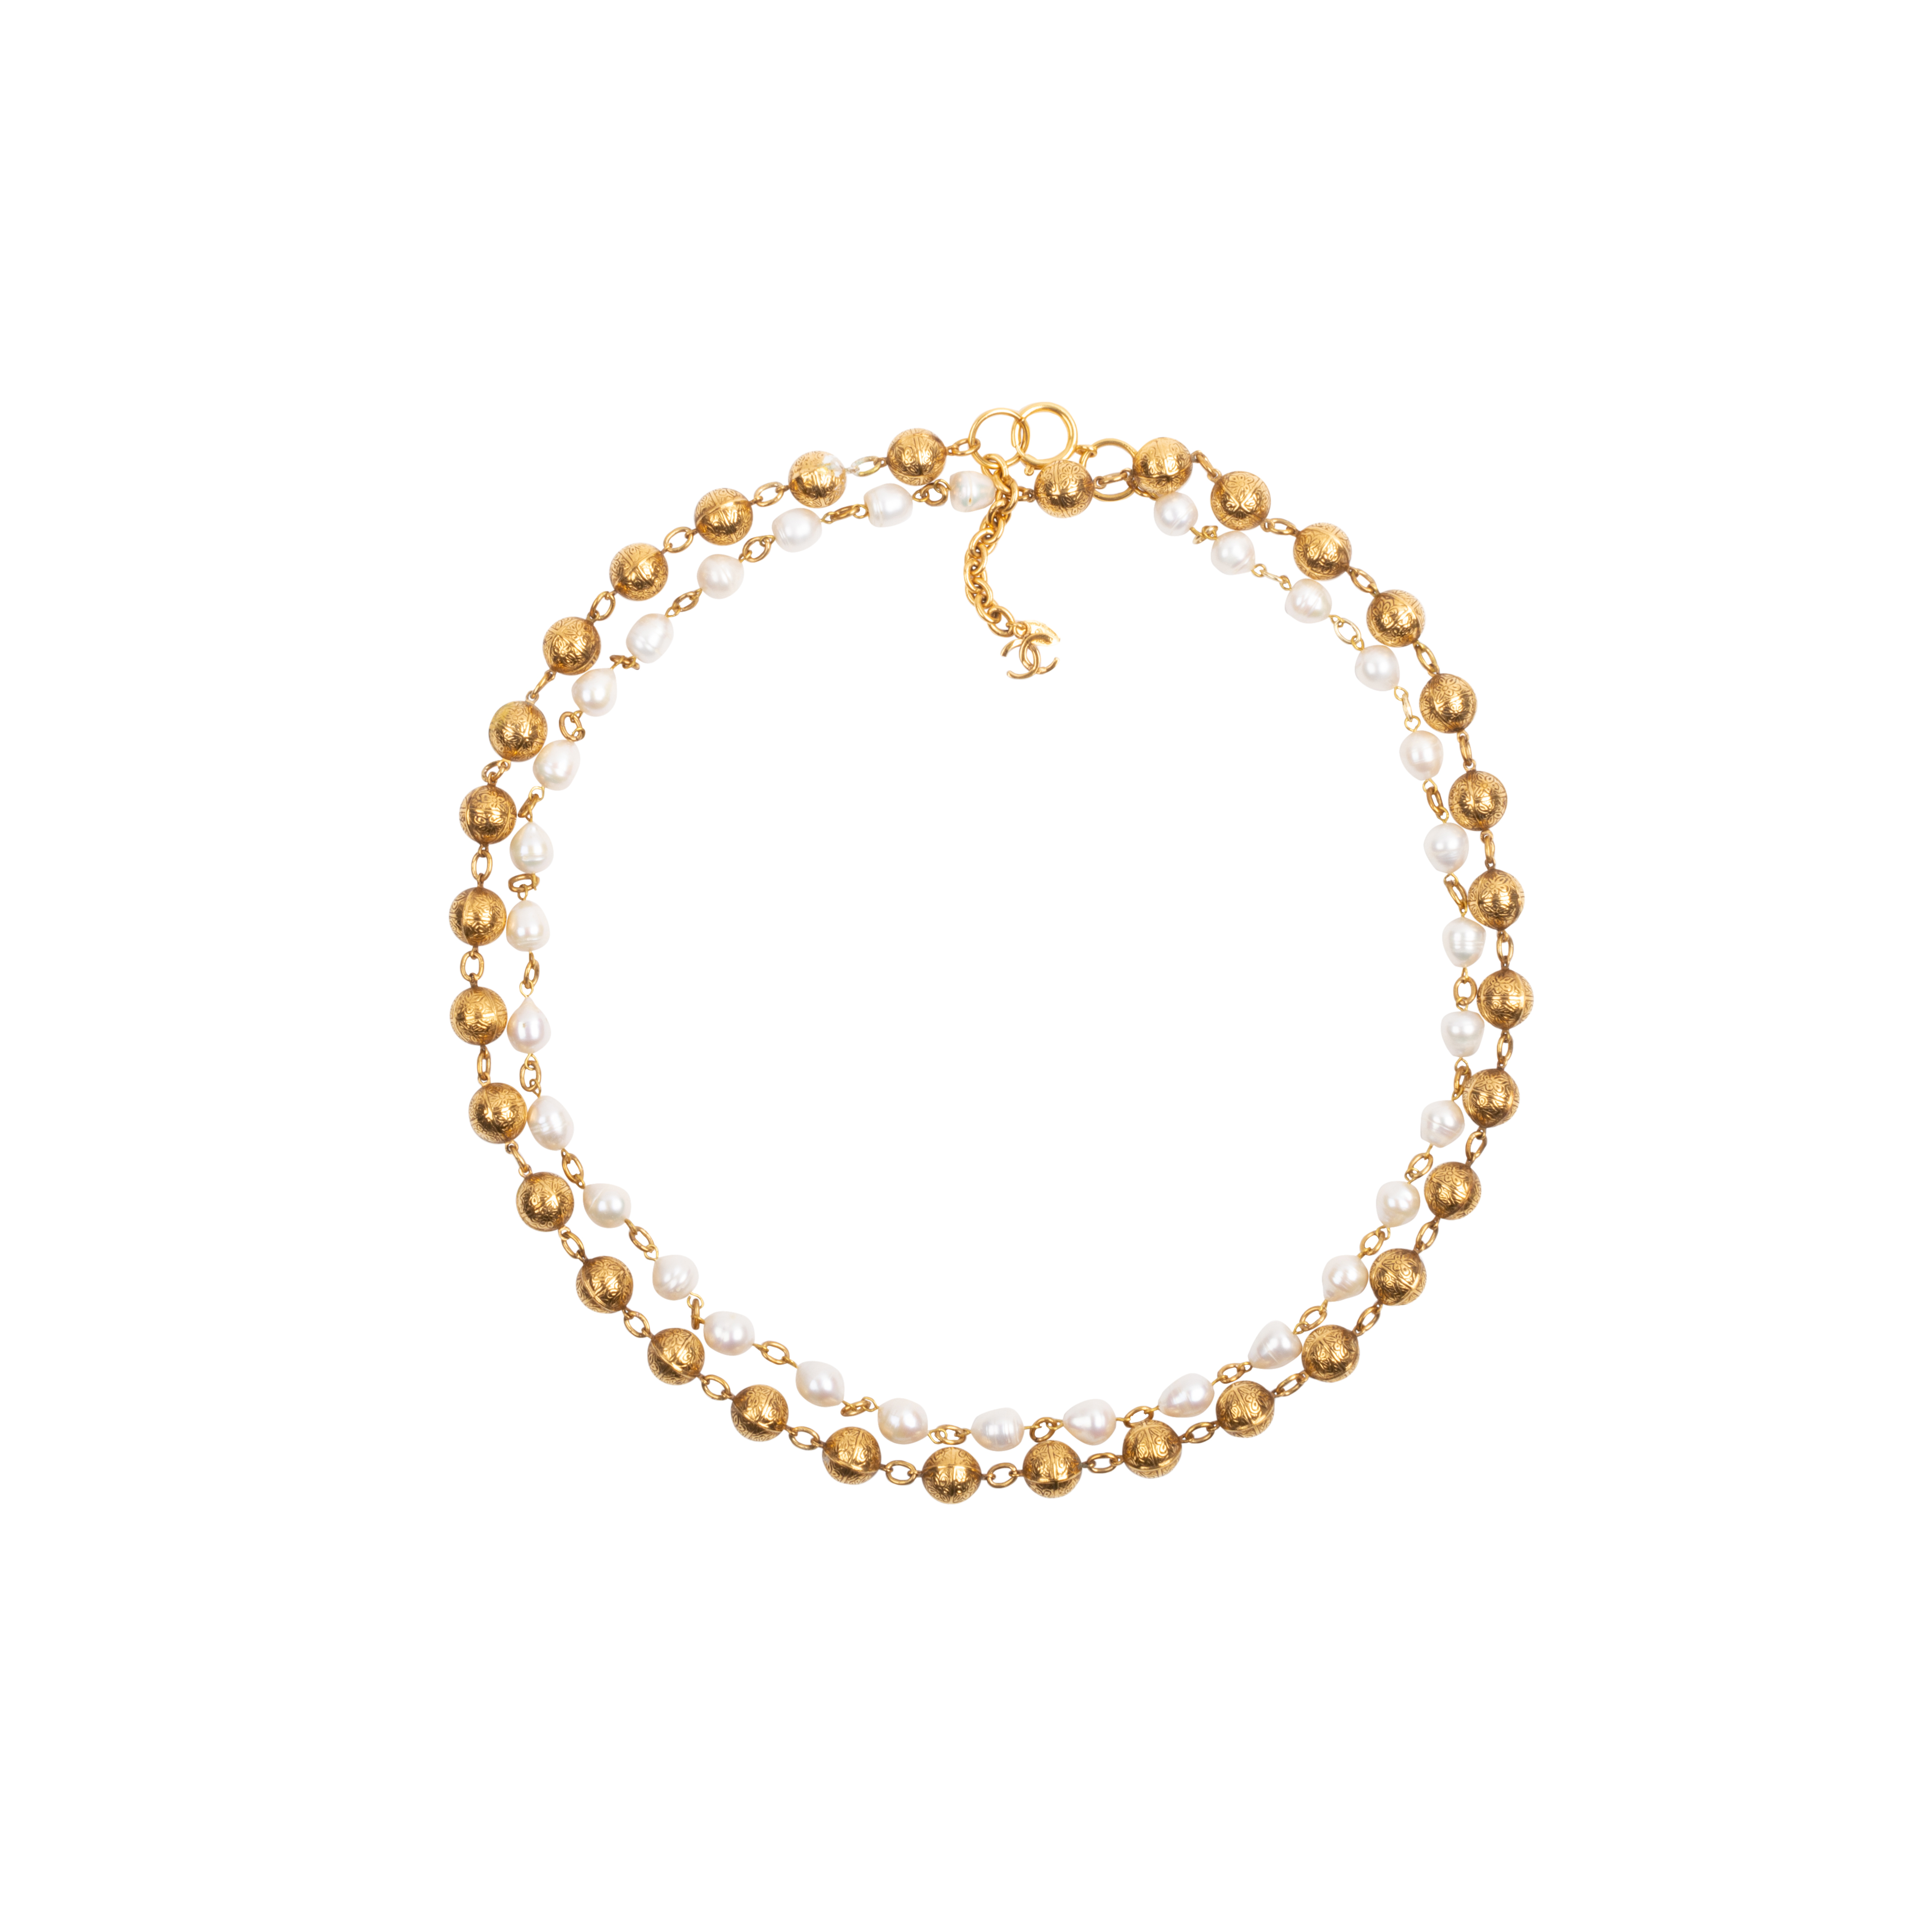 68cb7097776 Authentic Vintage Chanel Pearl and Chain Link Necklace (TFC-852-00008) -  THE FIFTH COLLECTION